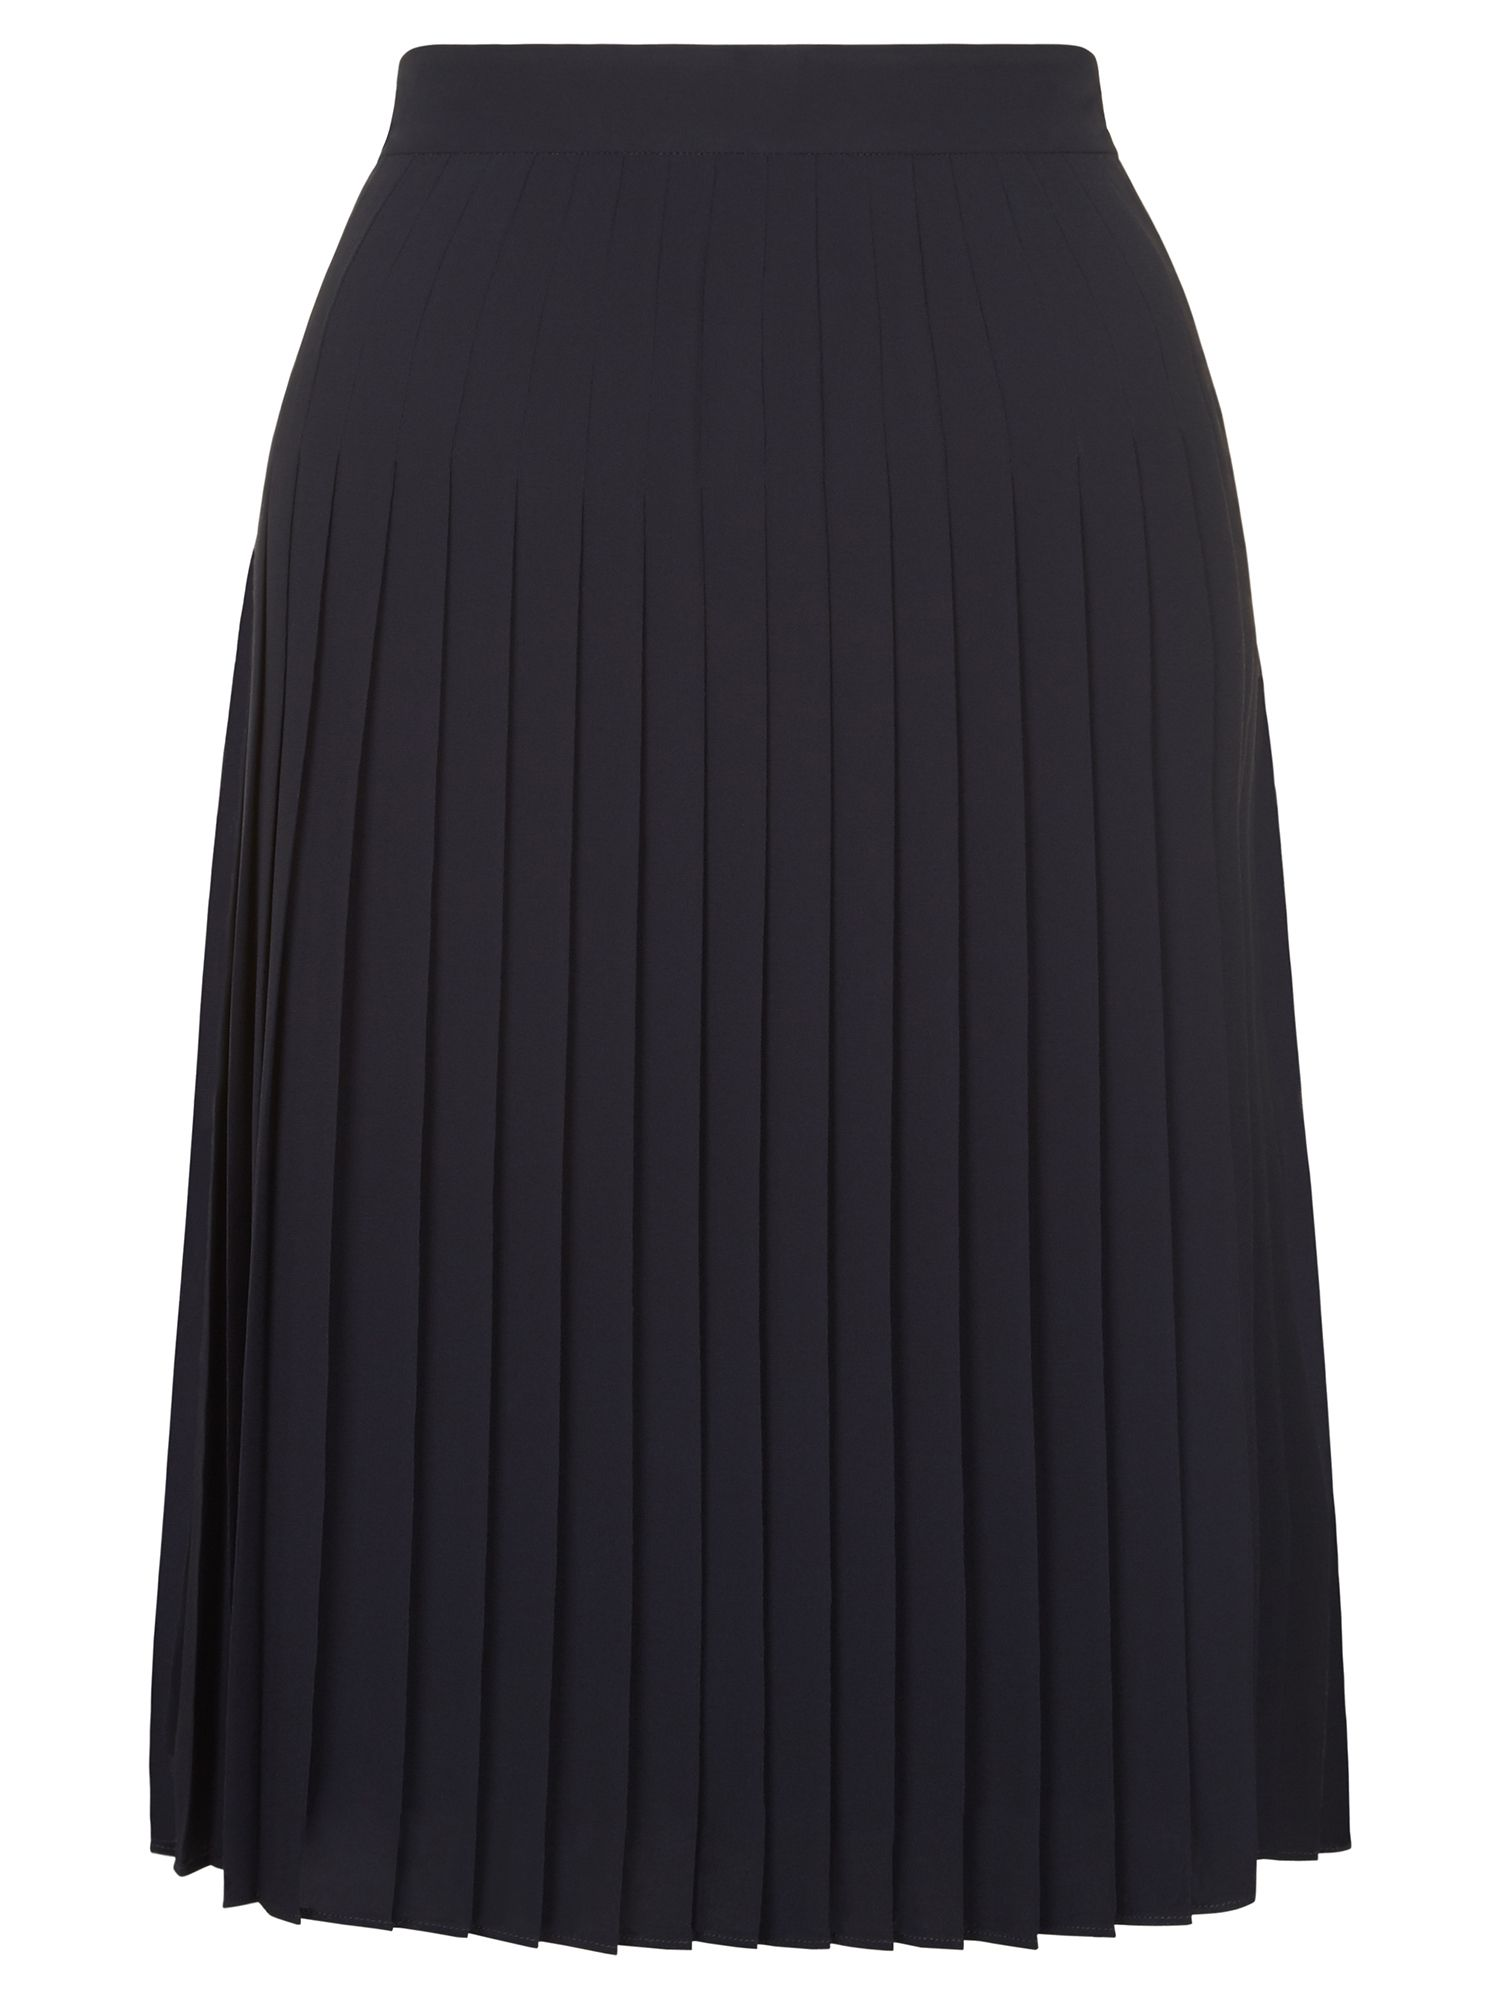 Hobbs Olivia Skirt, Blue